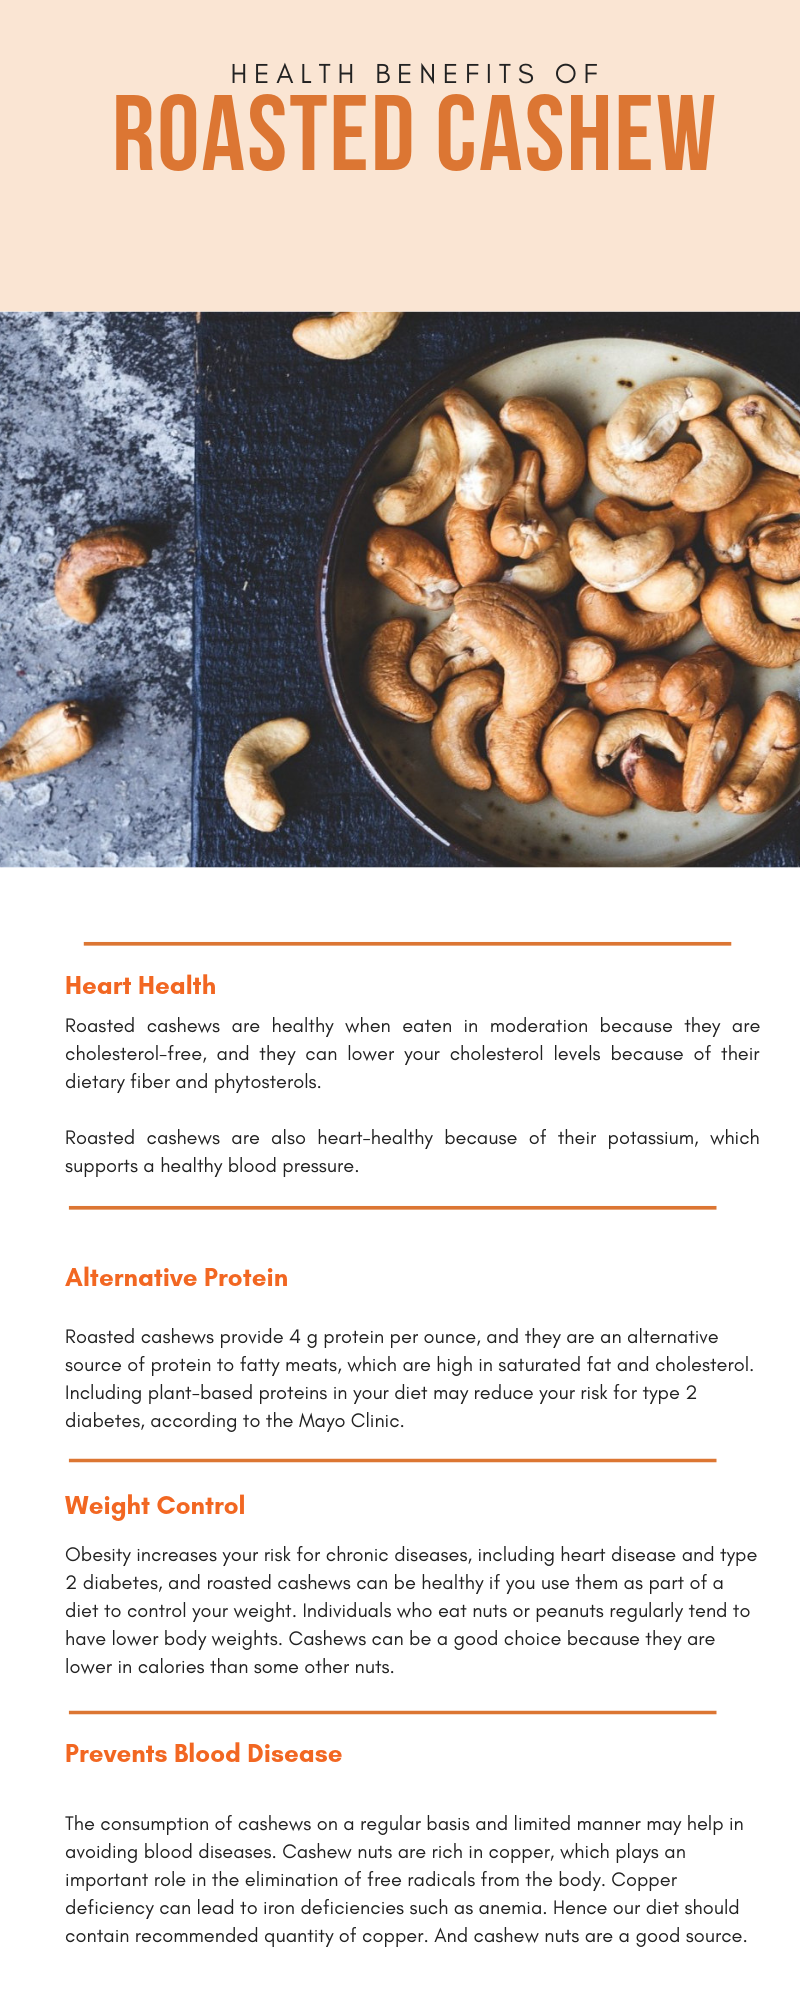 Cashews are a powerhouse of vitamins, minerals, and other beneficial nutrients.  While other nuts, such as almonds, may be higher in protein and fiber, eating nuts like cashews has been linked to cancer prevention, heart health, and weight maintenance.